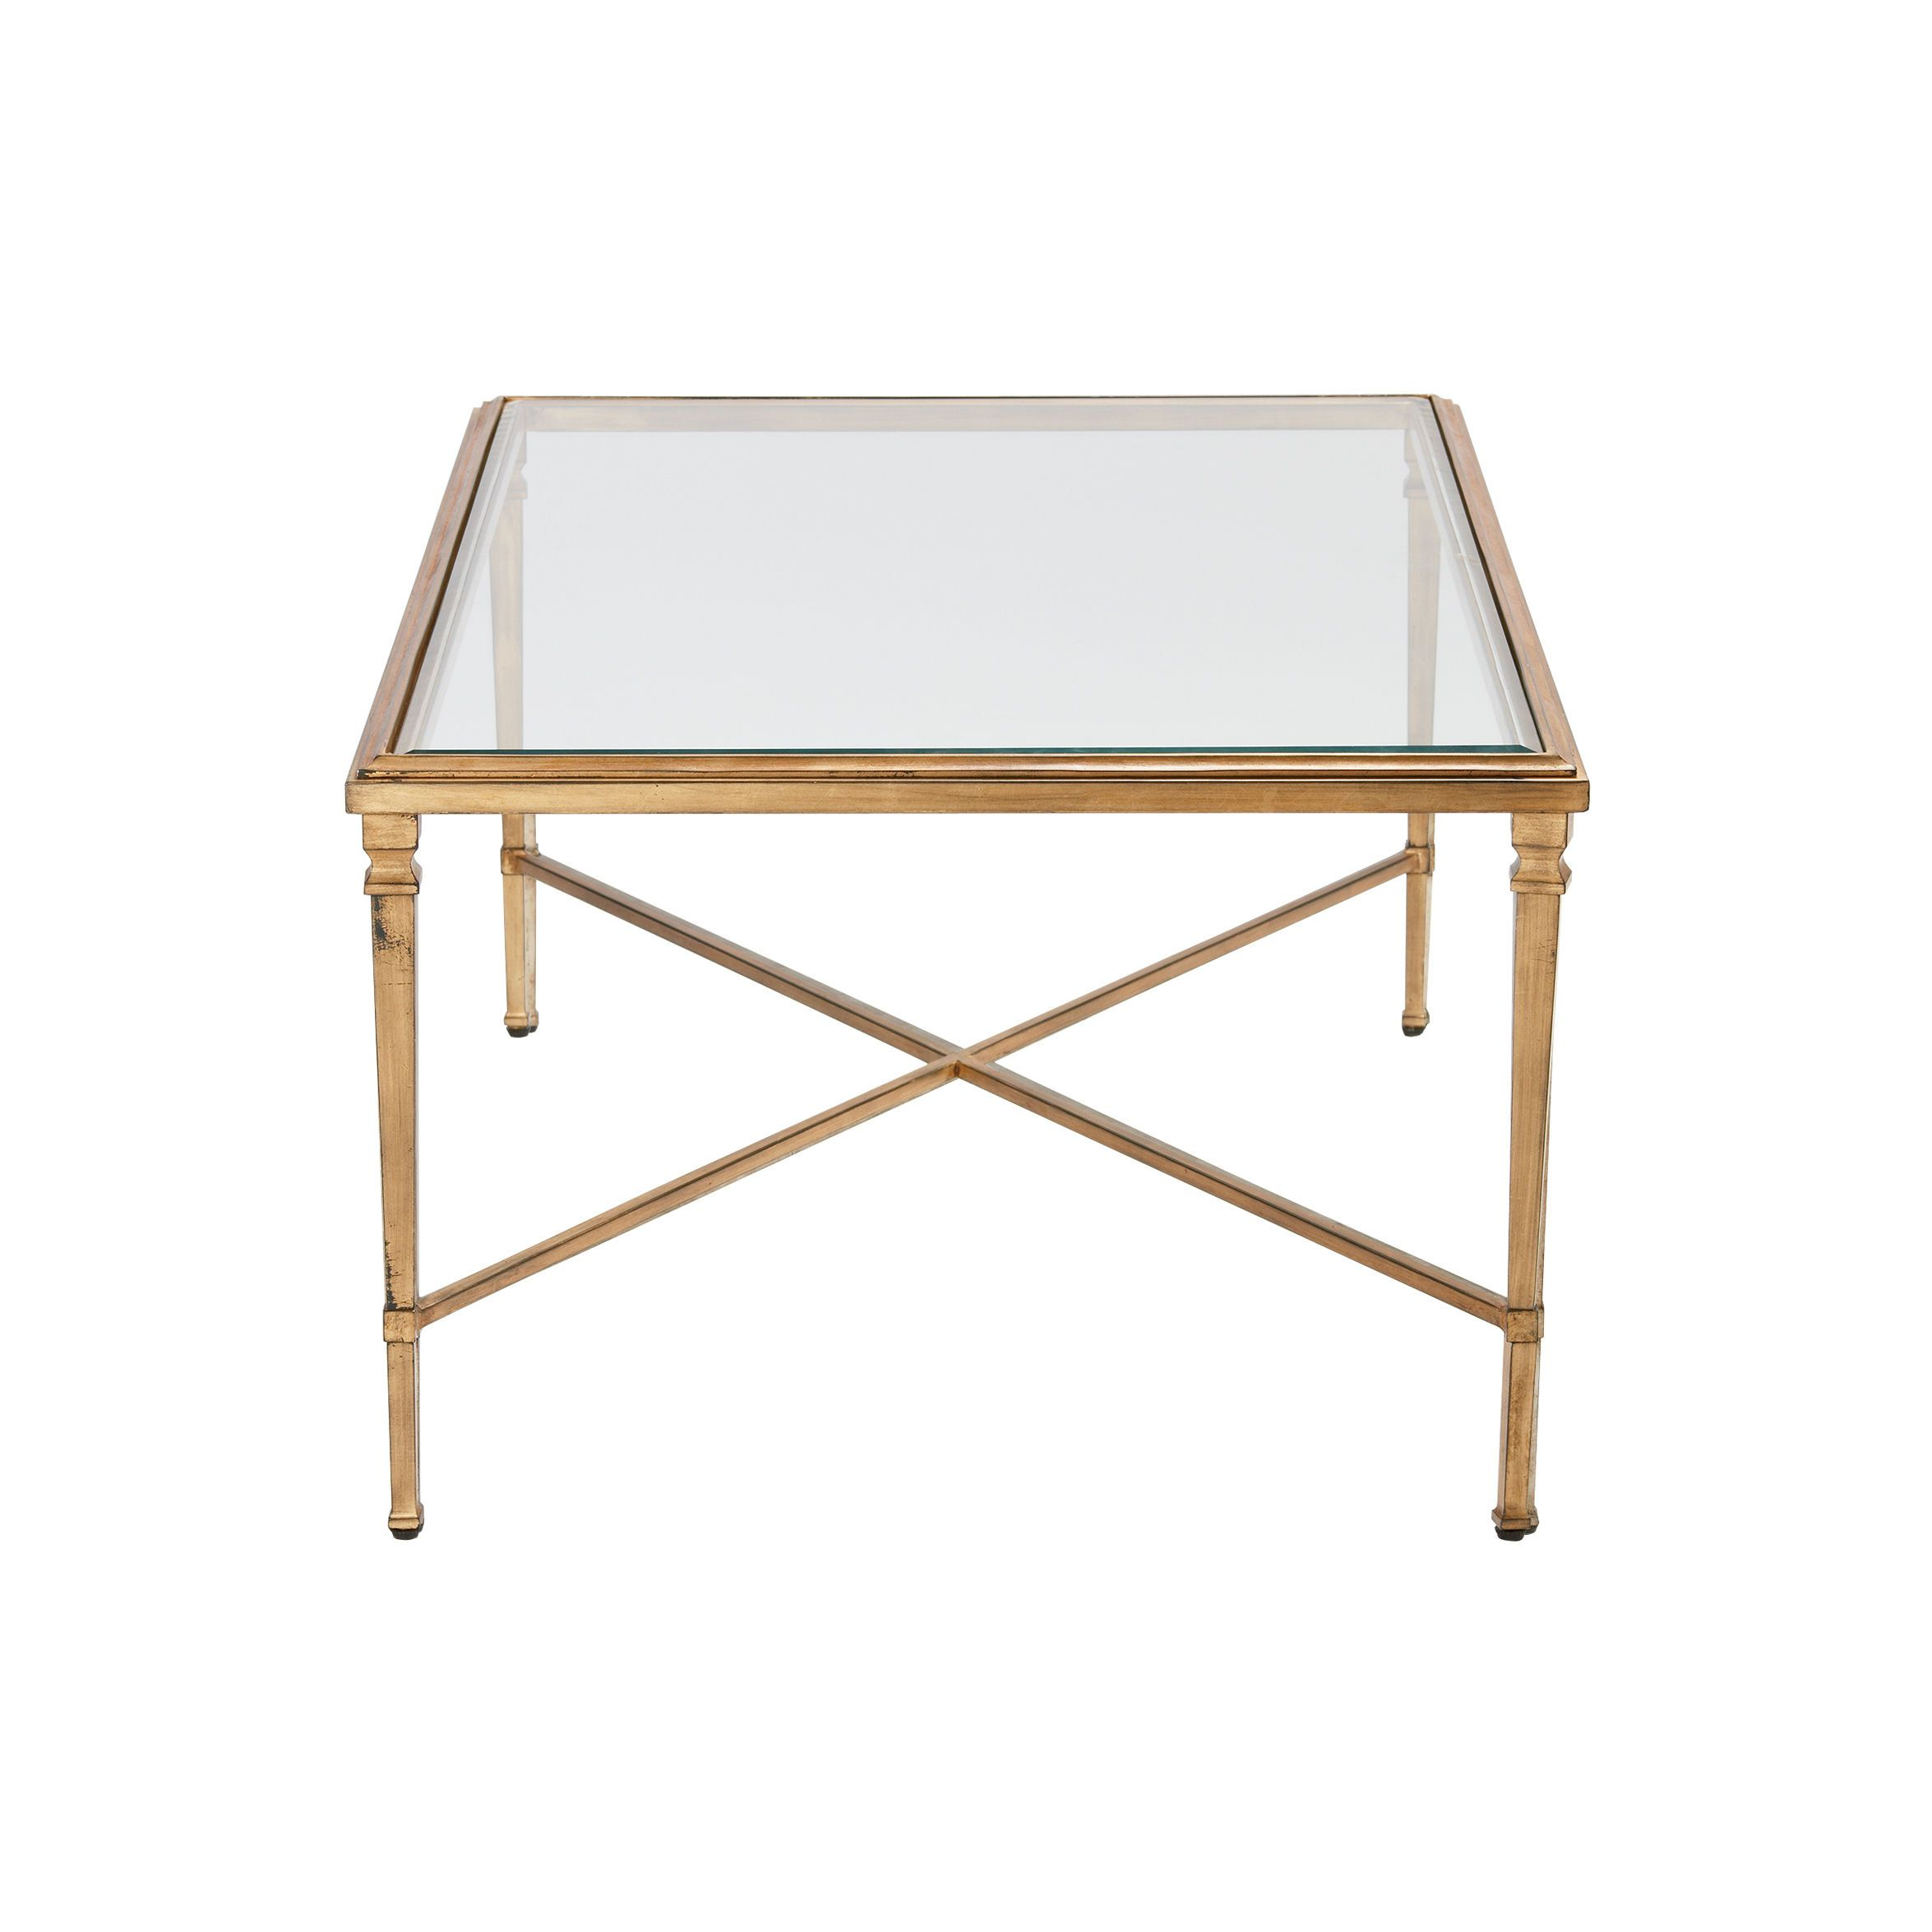 Alicia Cocktail Table Living Spaces Gold And Glass Coffee Table Hollywoodglam Hollywoodregency Coffee Table Living Table Table [ 1288 x 1911 Pixel ]